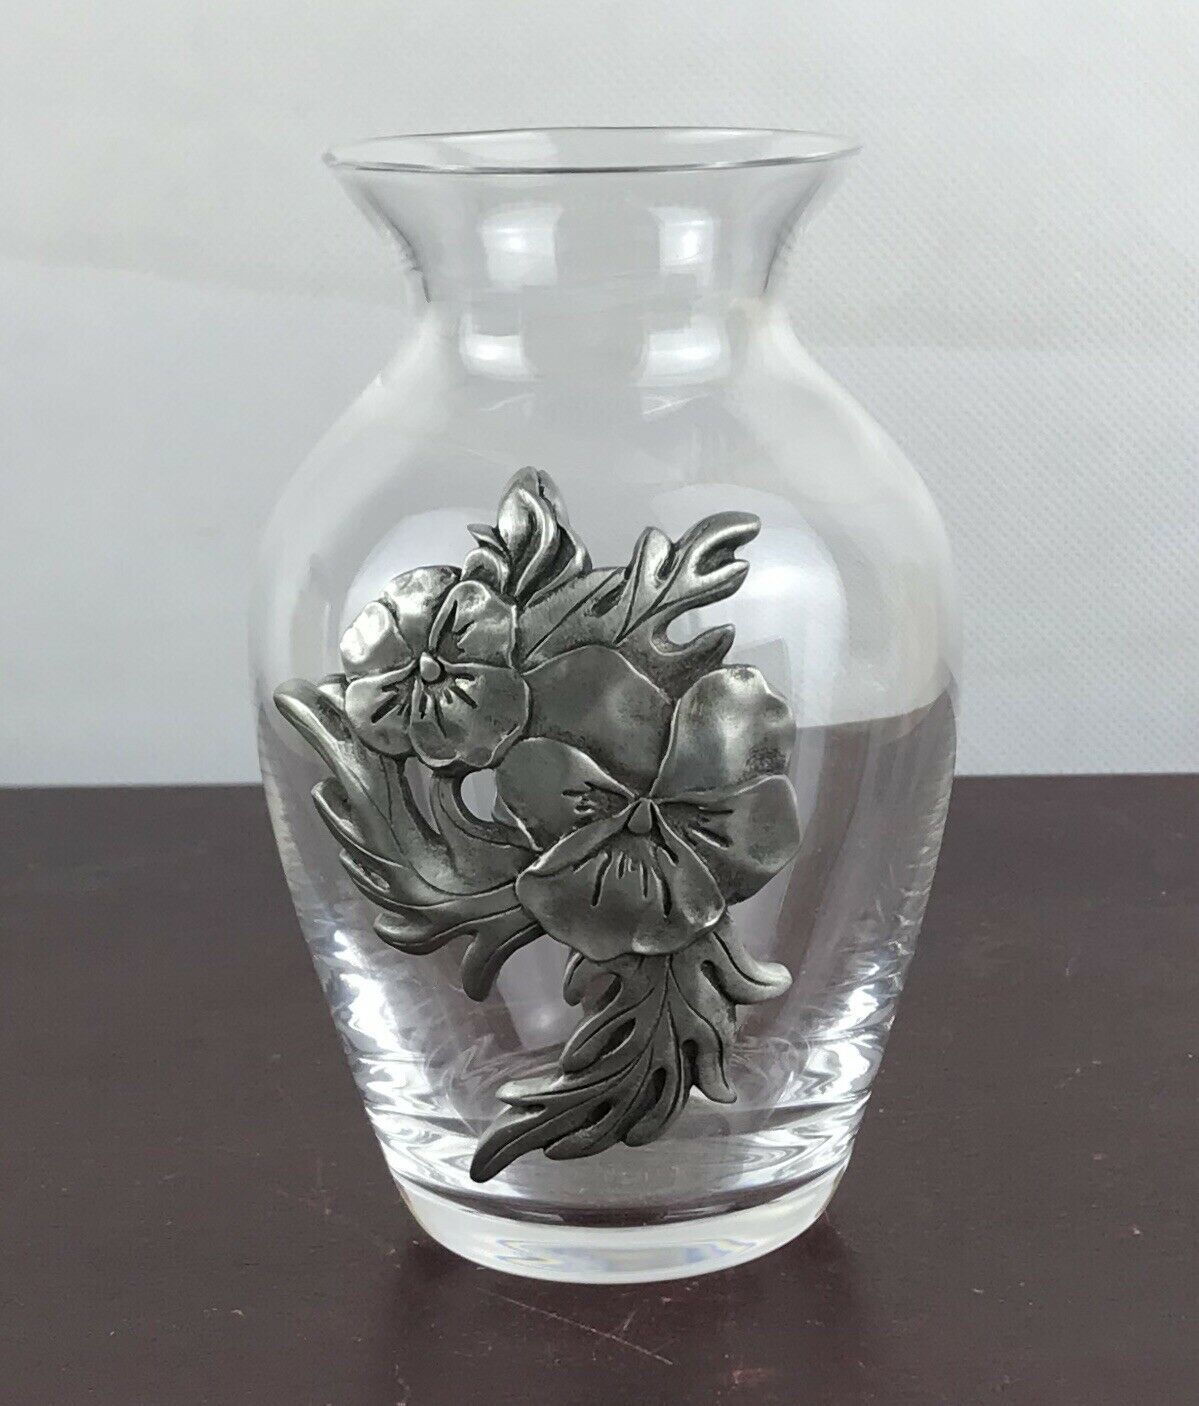 Primary image for Holly Sue Small  Glass Vase With Metal Decor